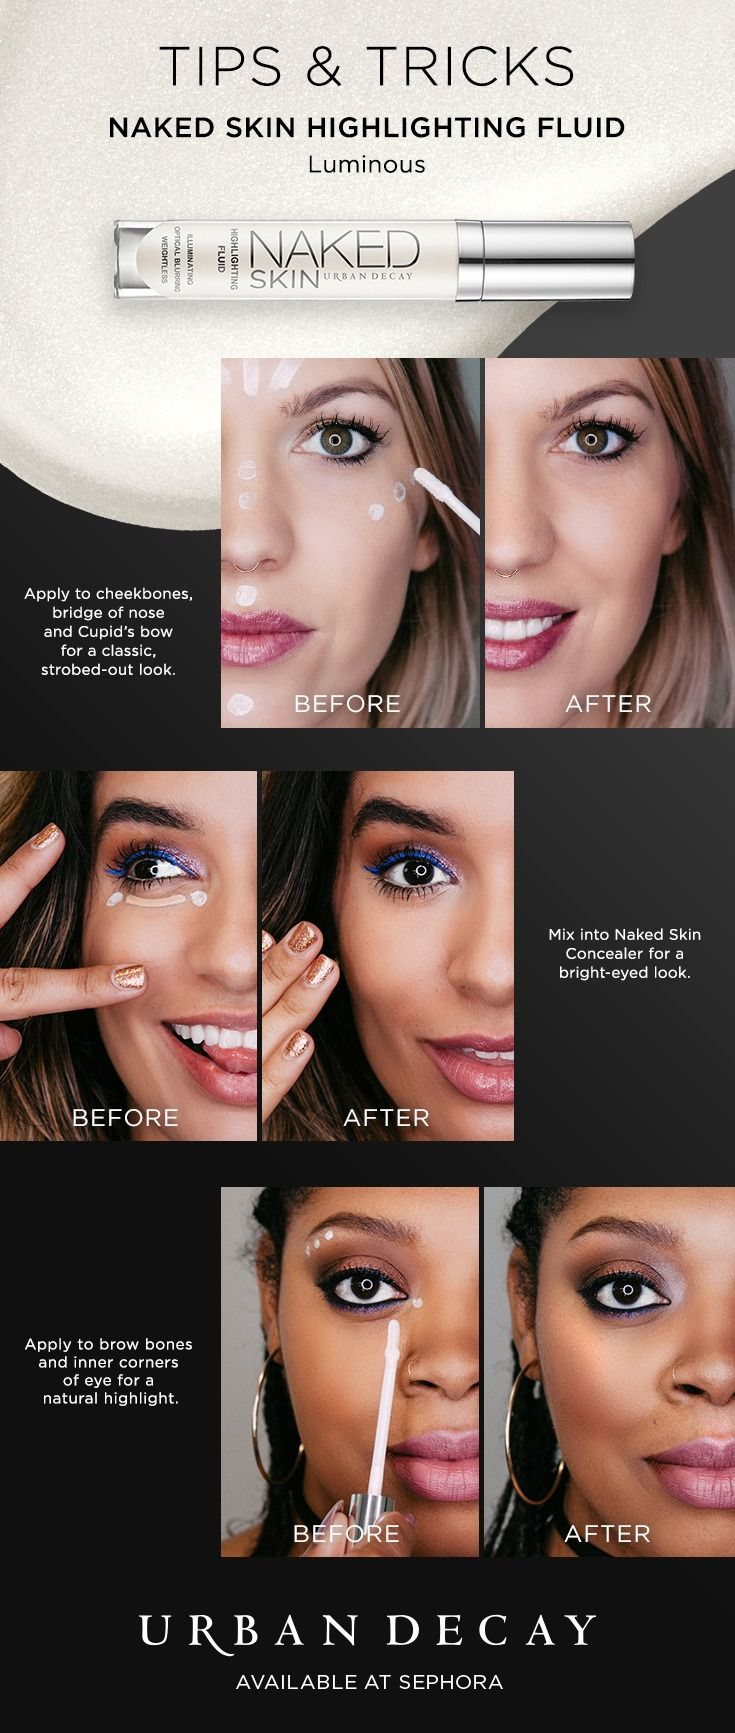 Check out Urban Decay's illuminating tips & tricks and grab your favorite Naked Skin Highlighting Fluid at #Sephora